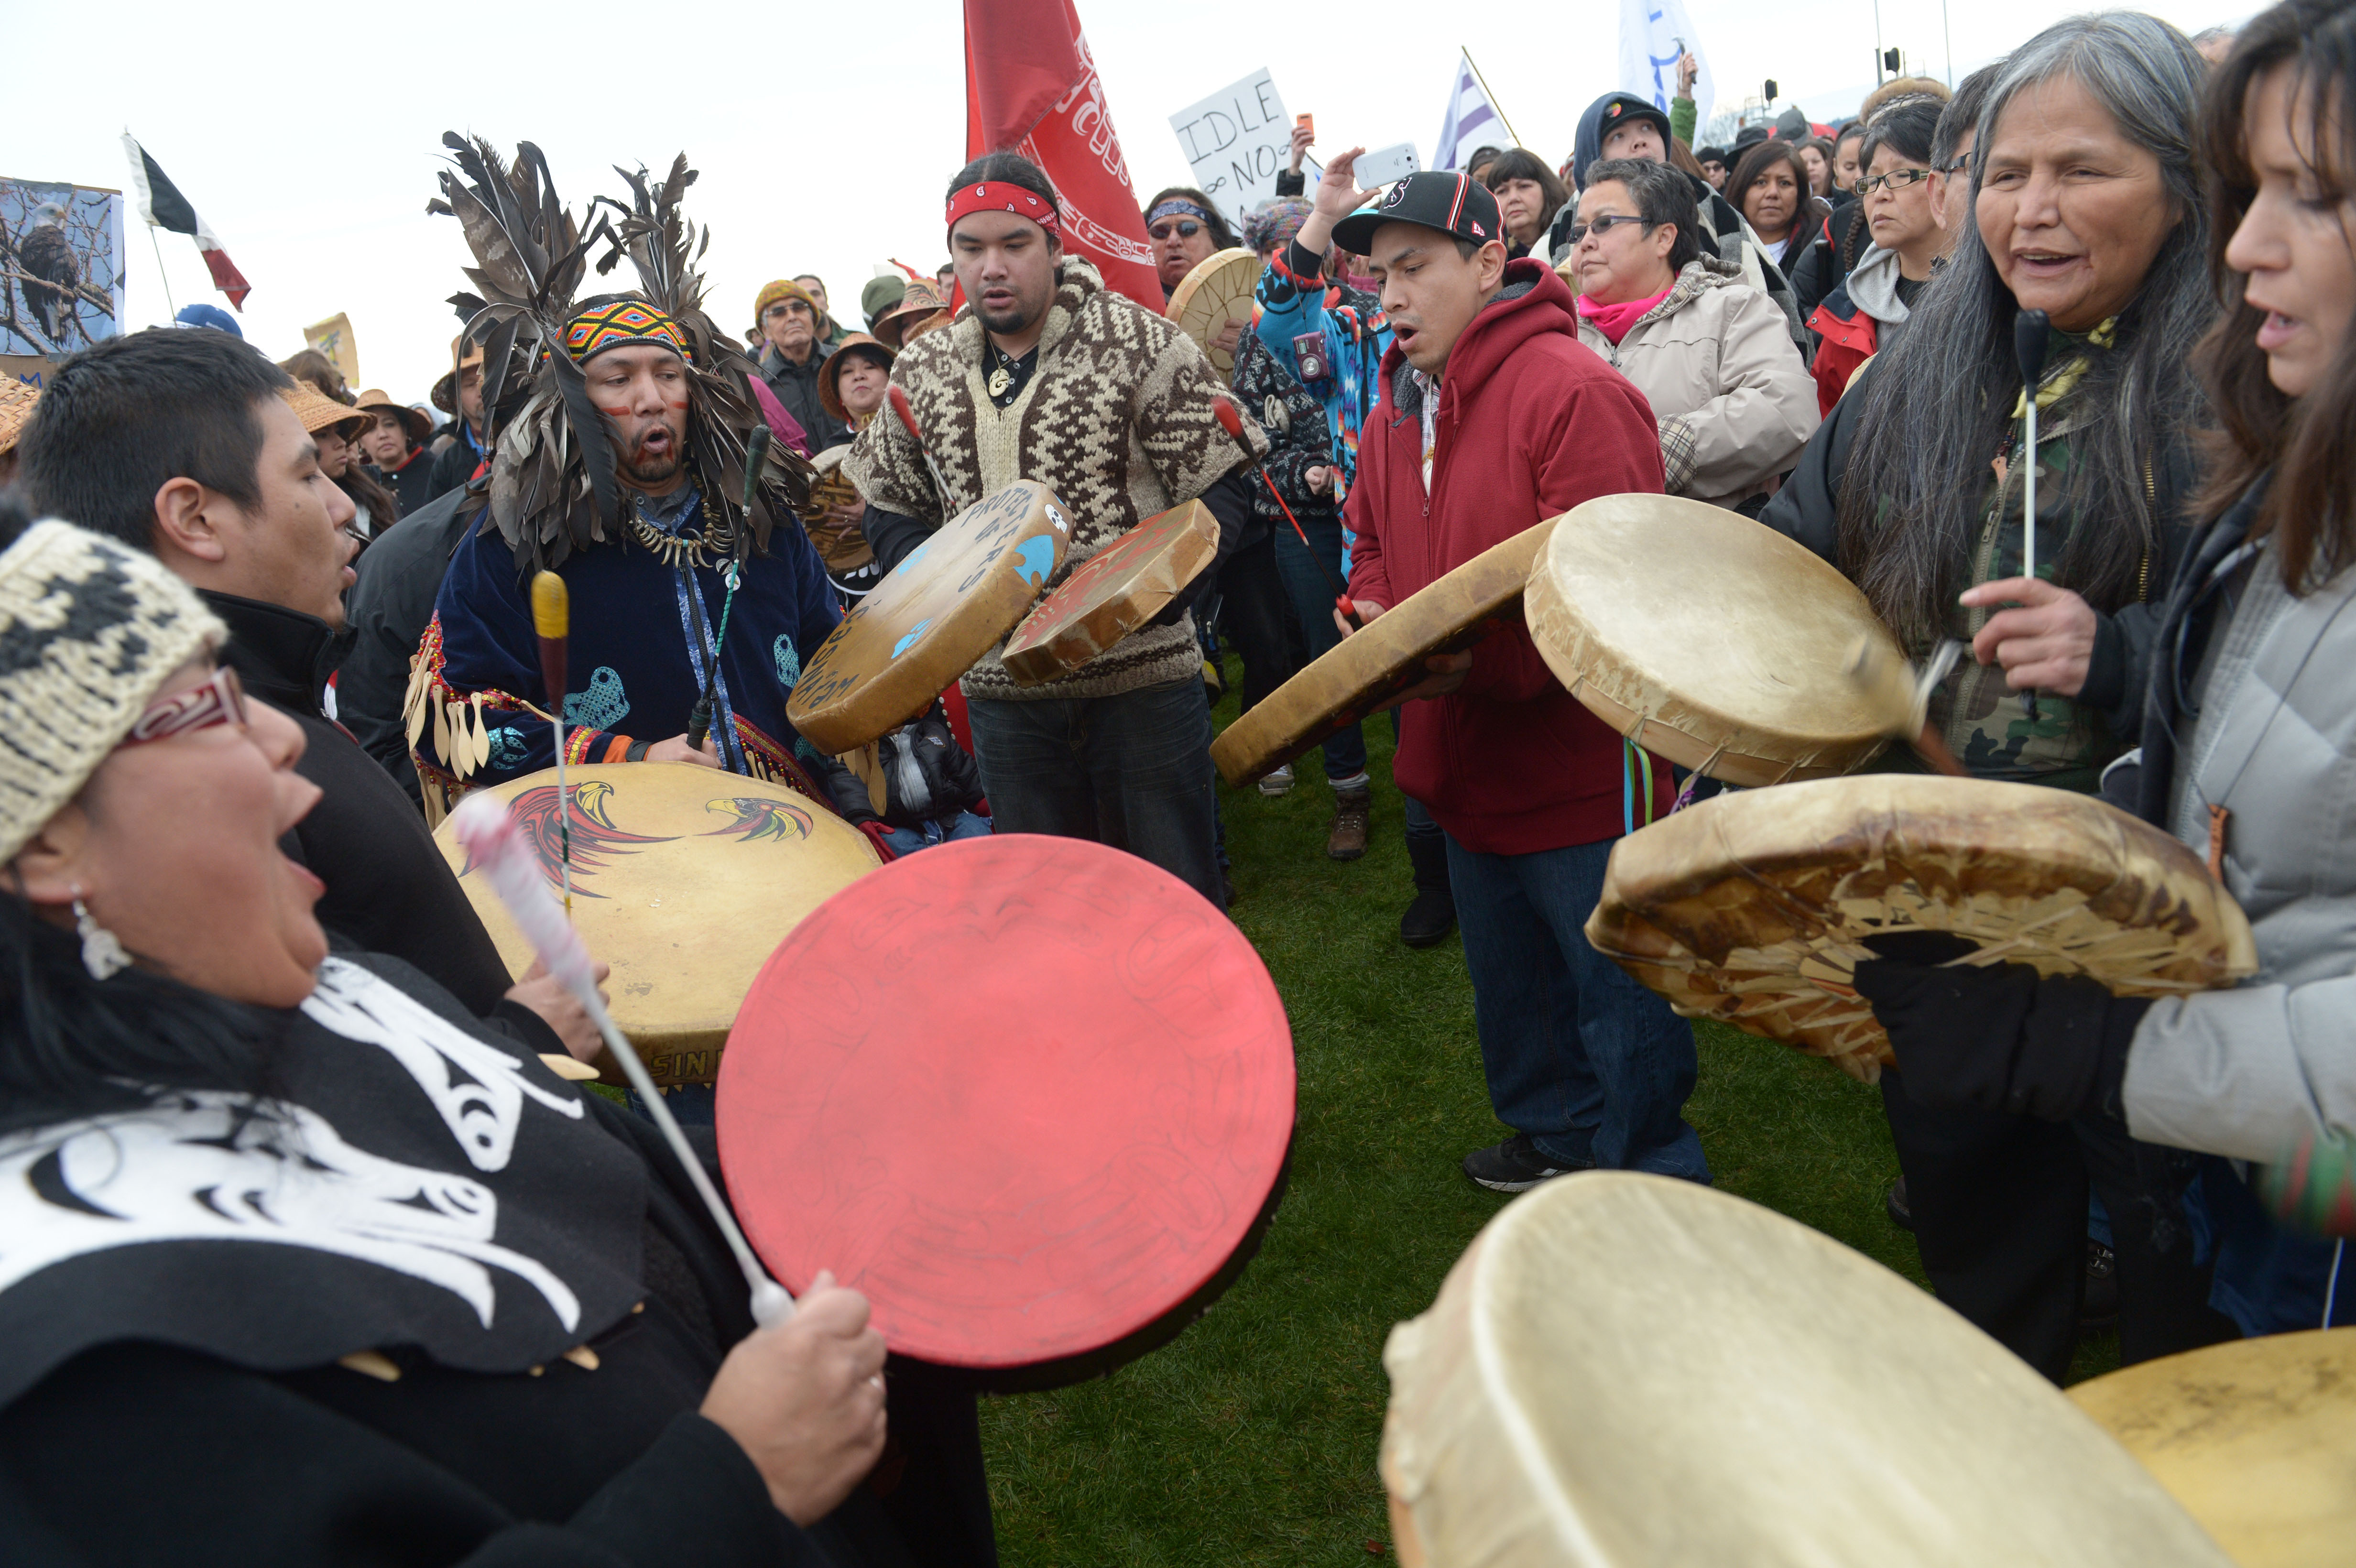 First Nations protest drummers